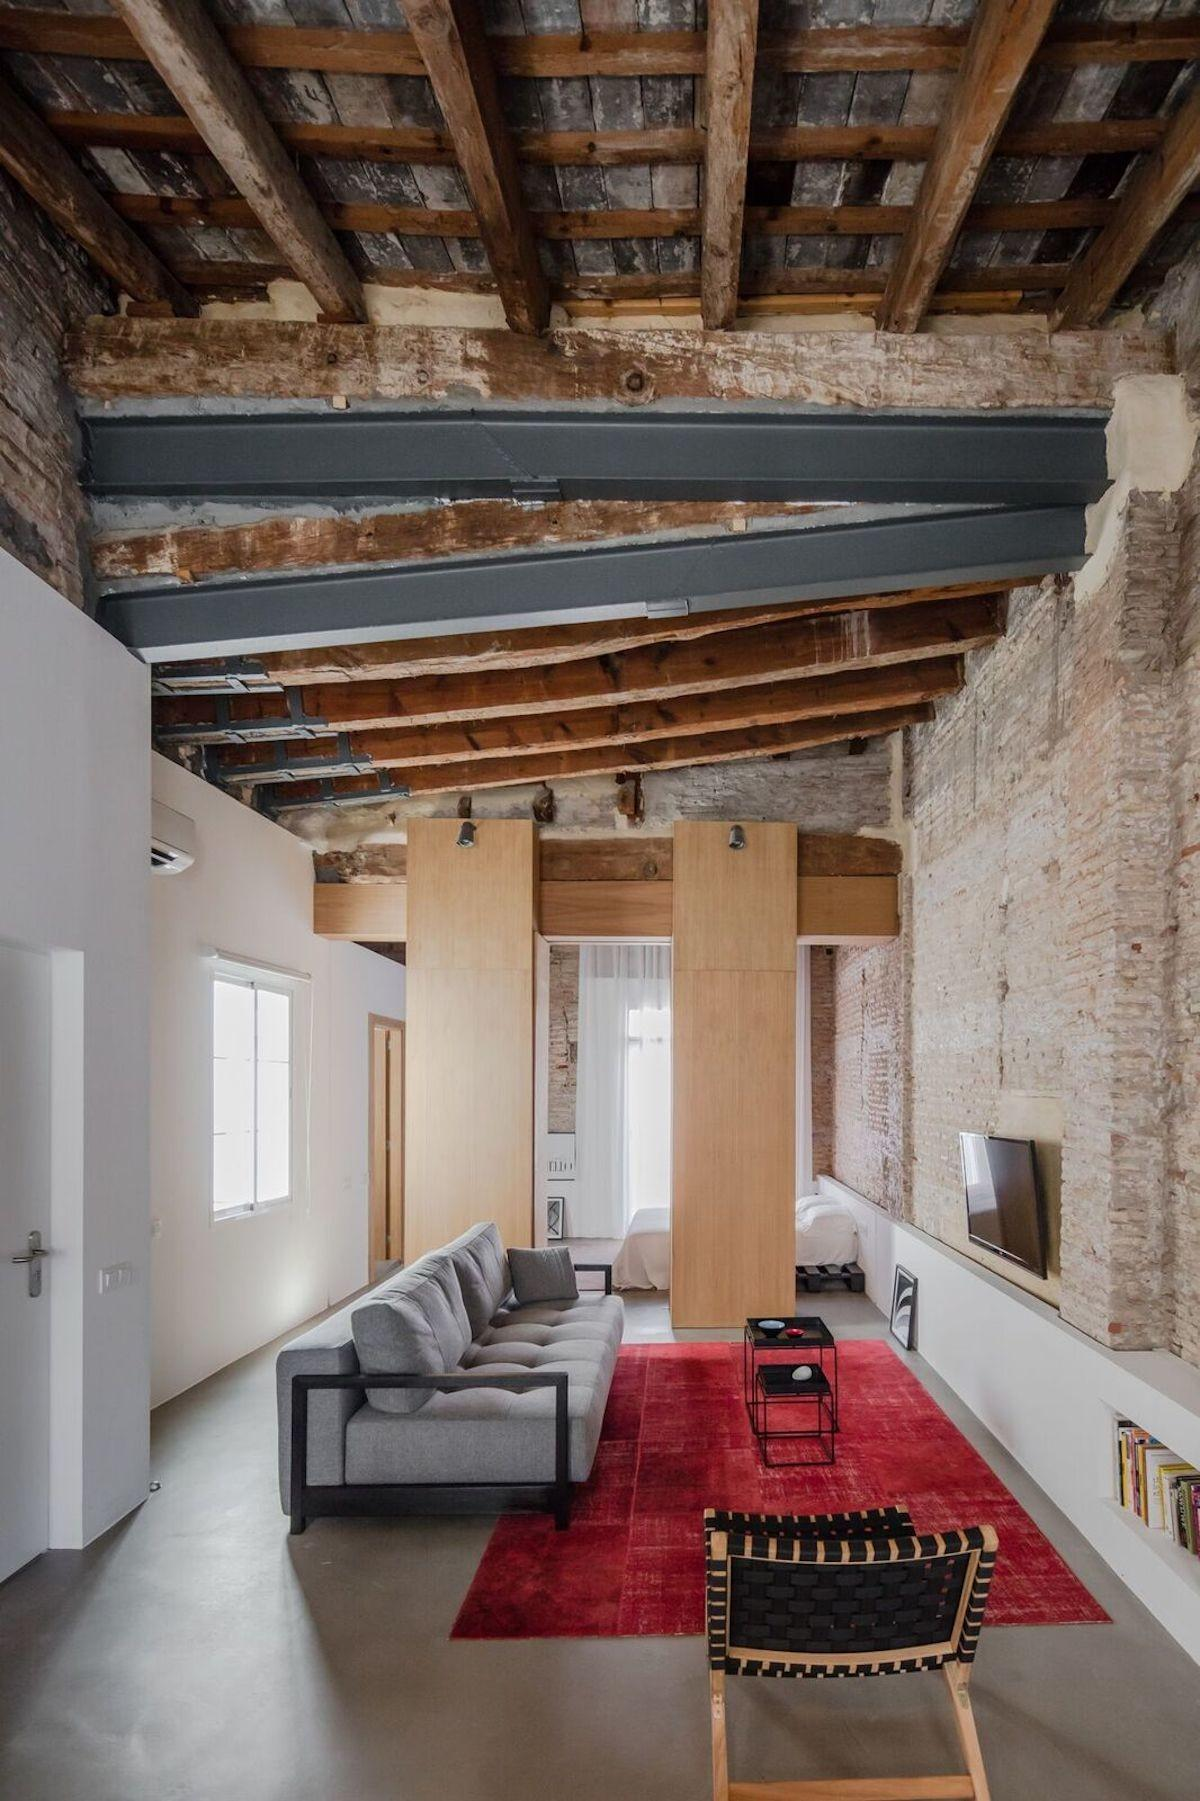 Apartment Renovation Exposes Rich History Captured